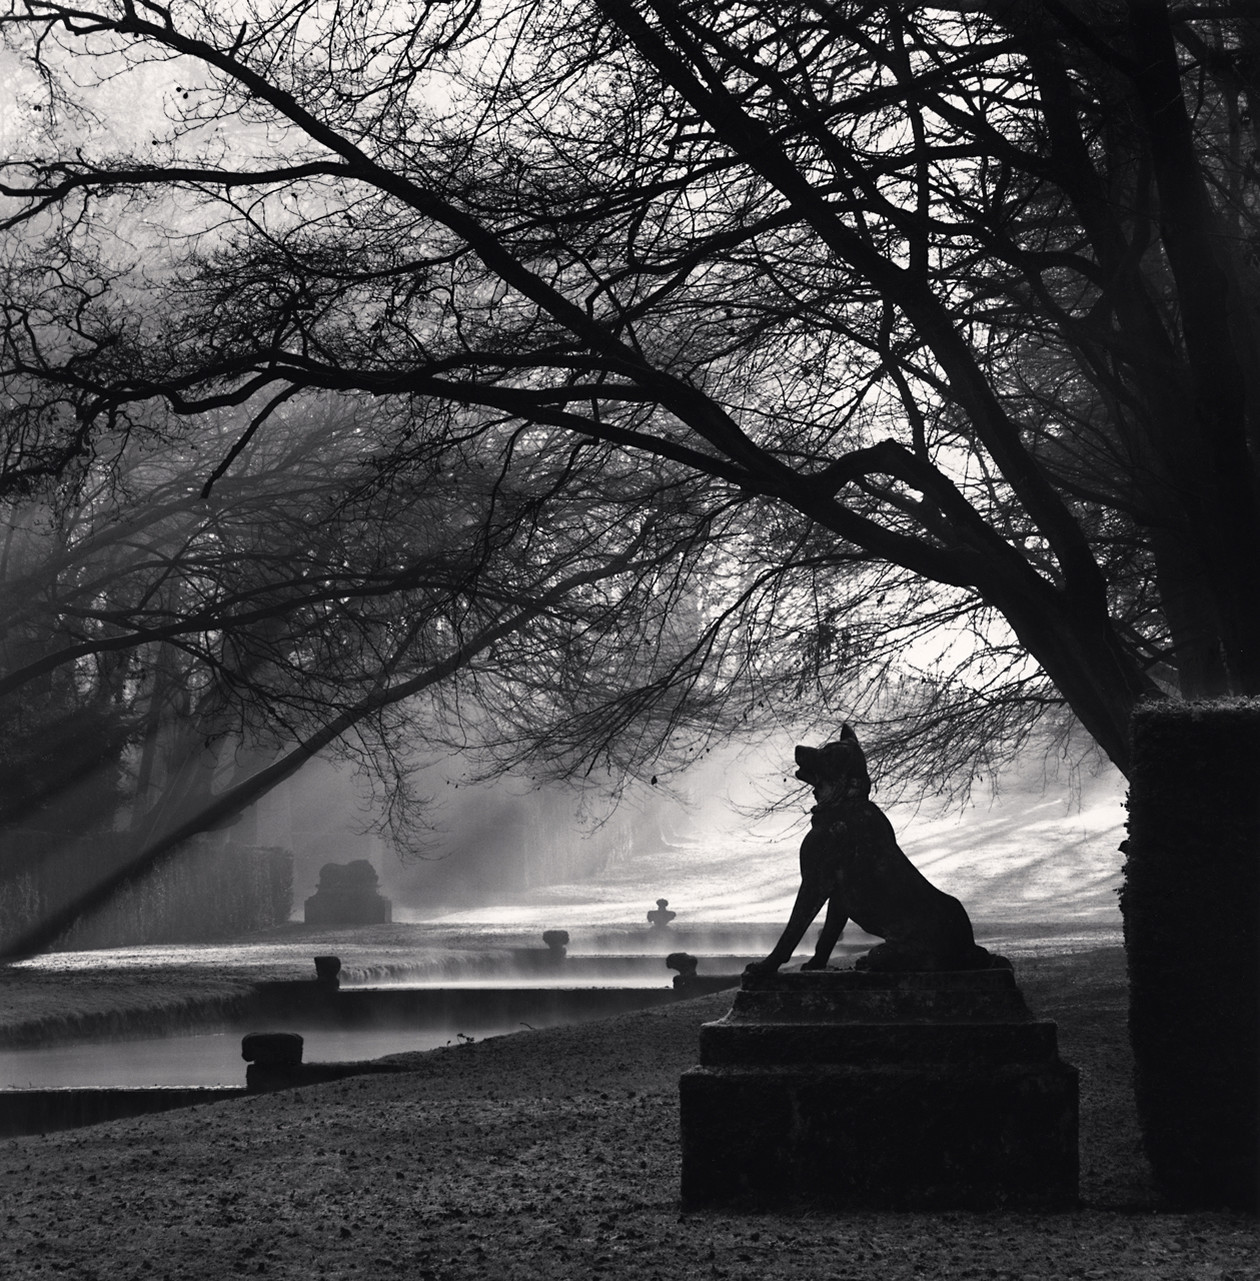 Guardian Wolf, Courances (1997) by Michael Kenna